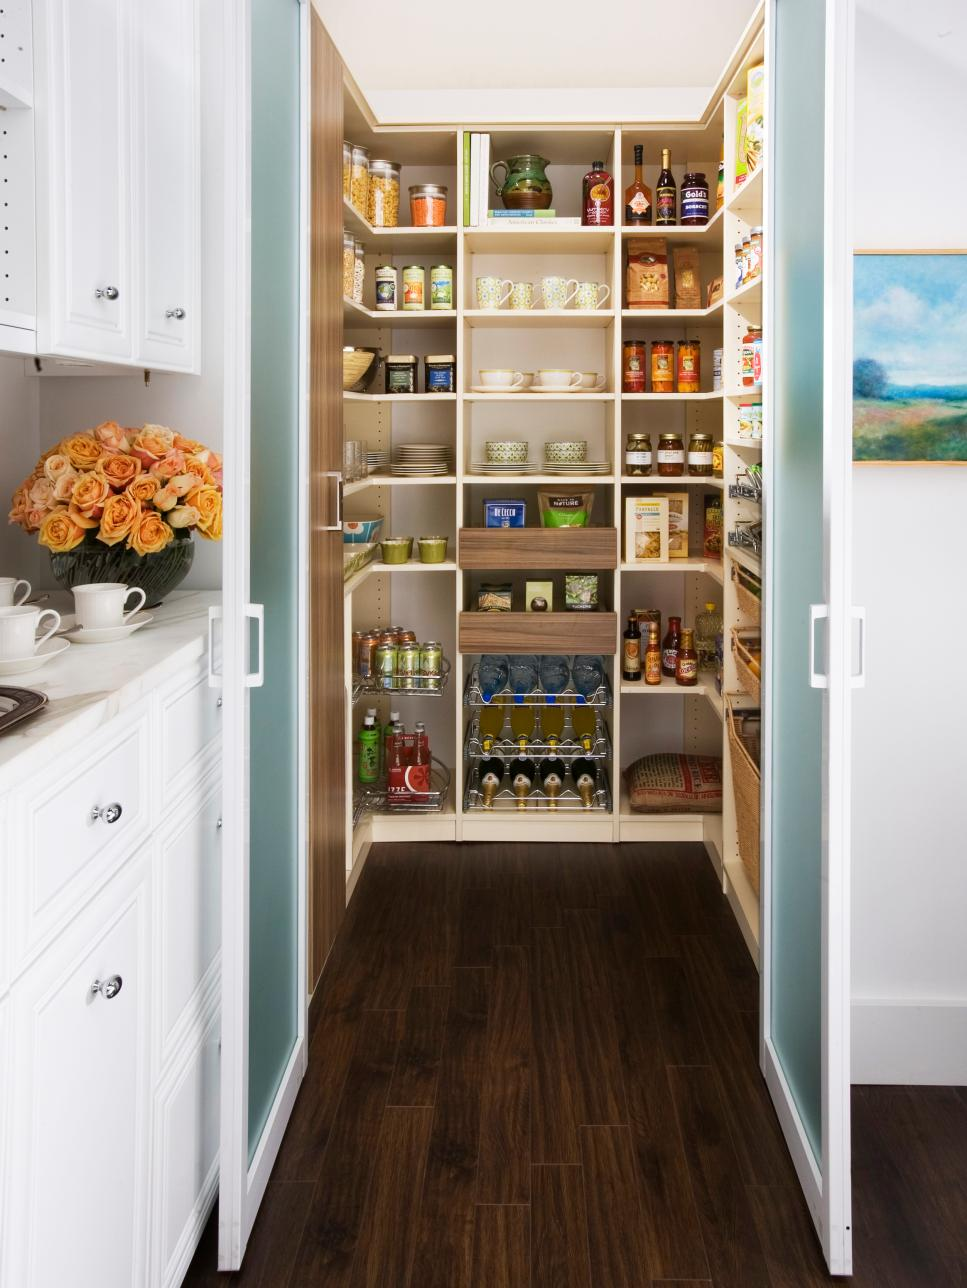 kitchen storage ideas hgtv - Ideas For Kitchen Cabinets